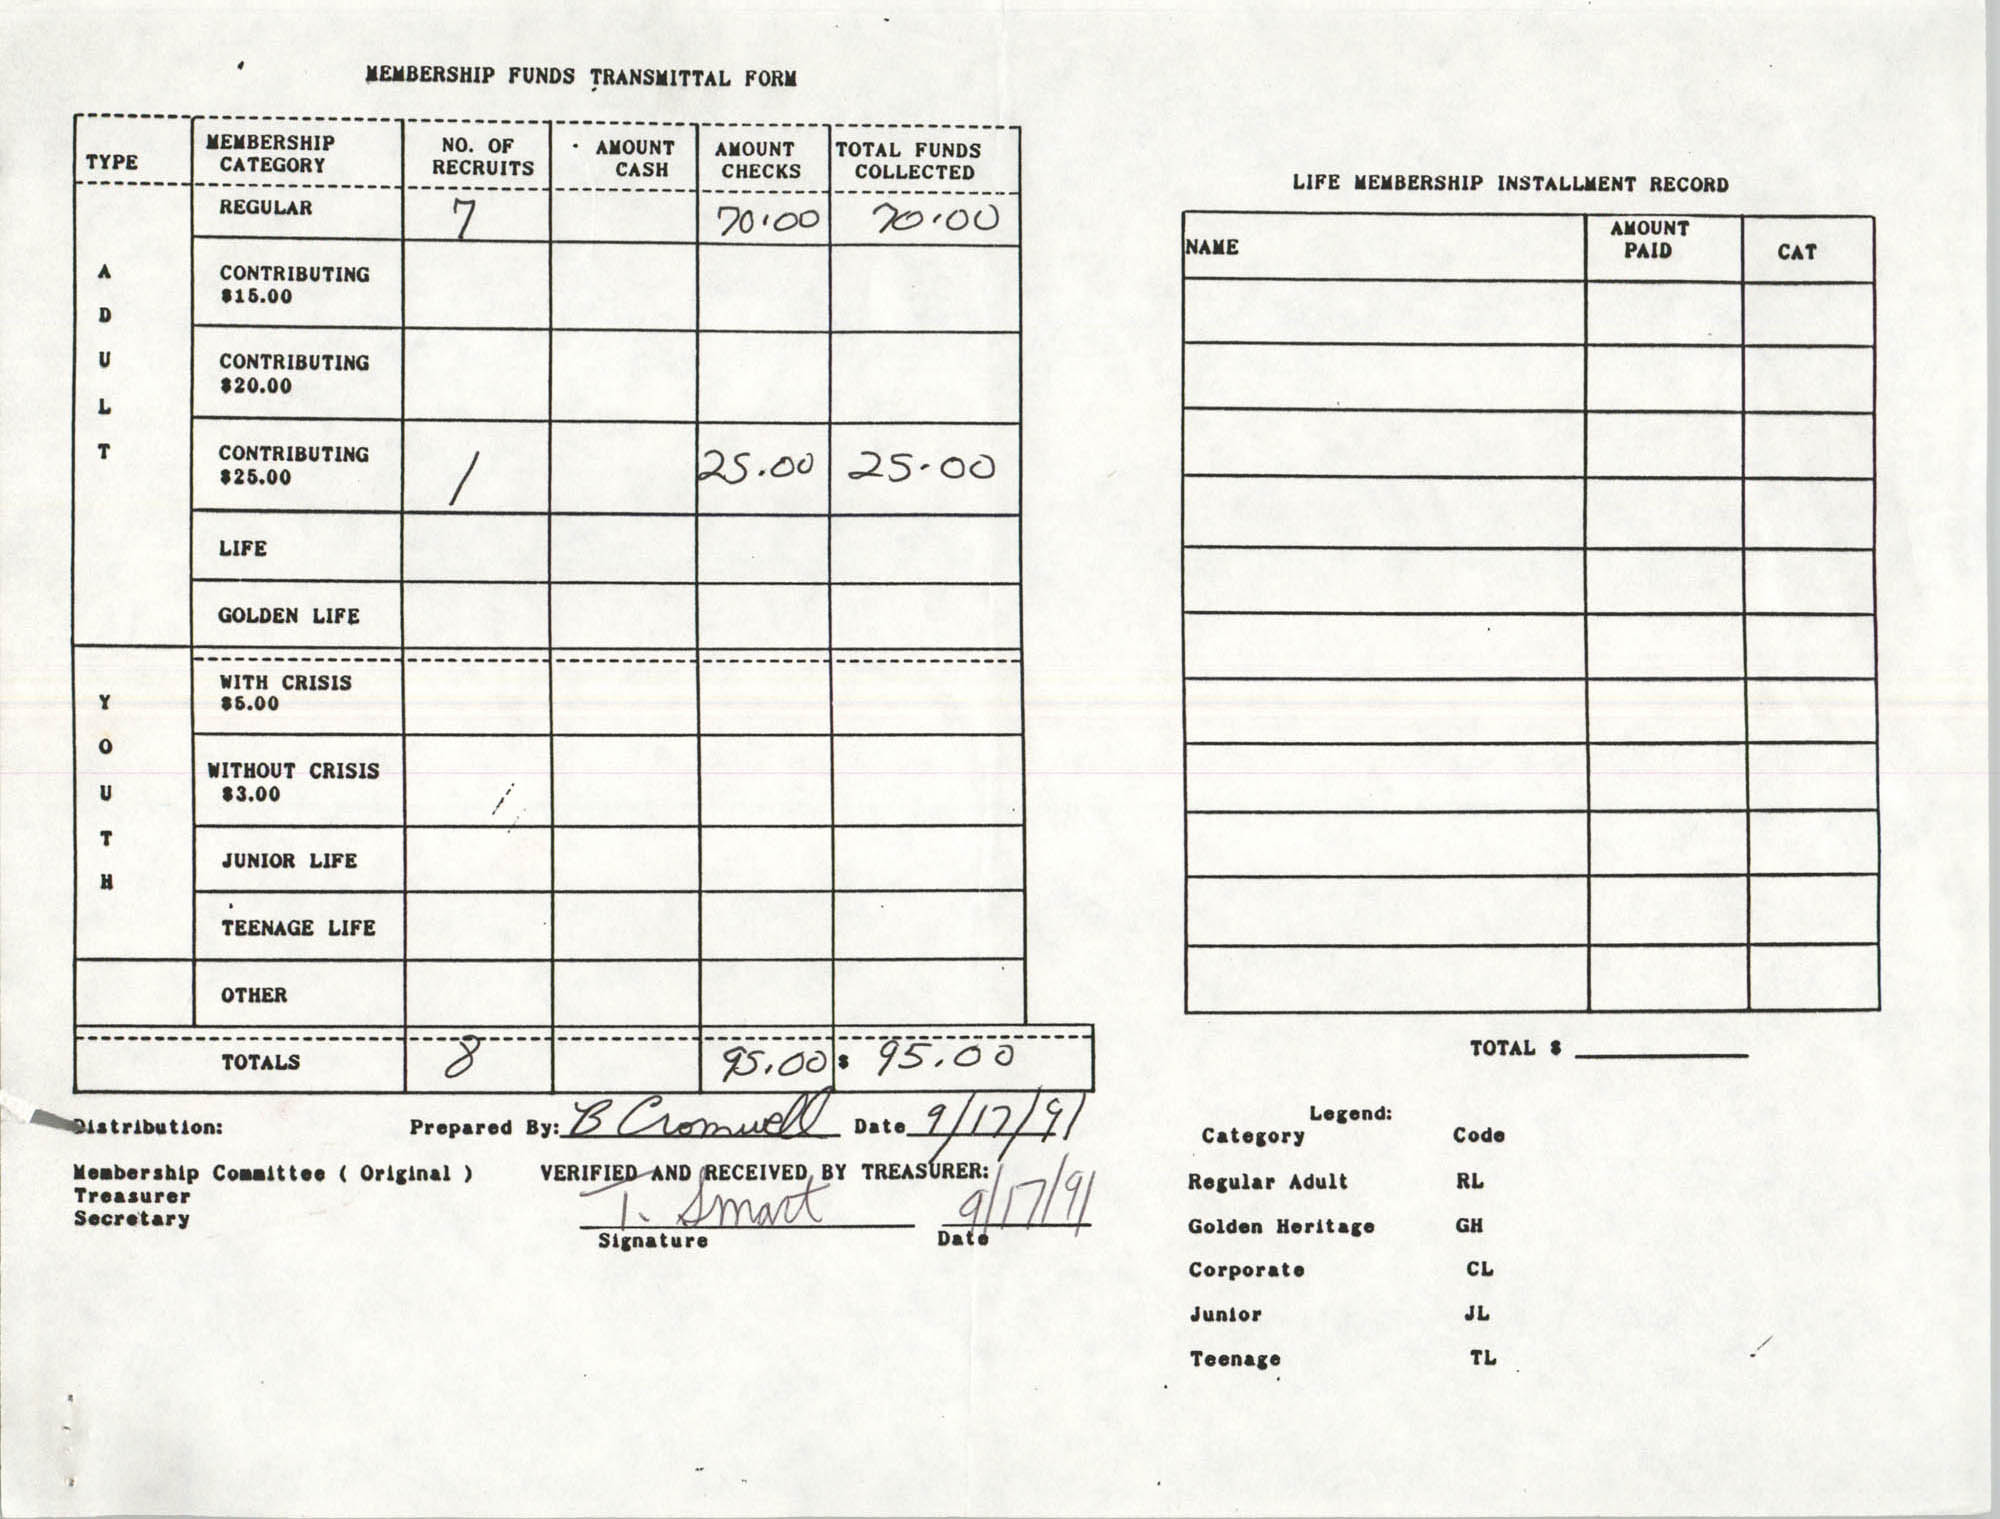 Charleston Branch of the NAACP Funds Transmittal Forms, September 1991, Page 37